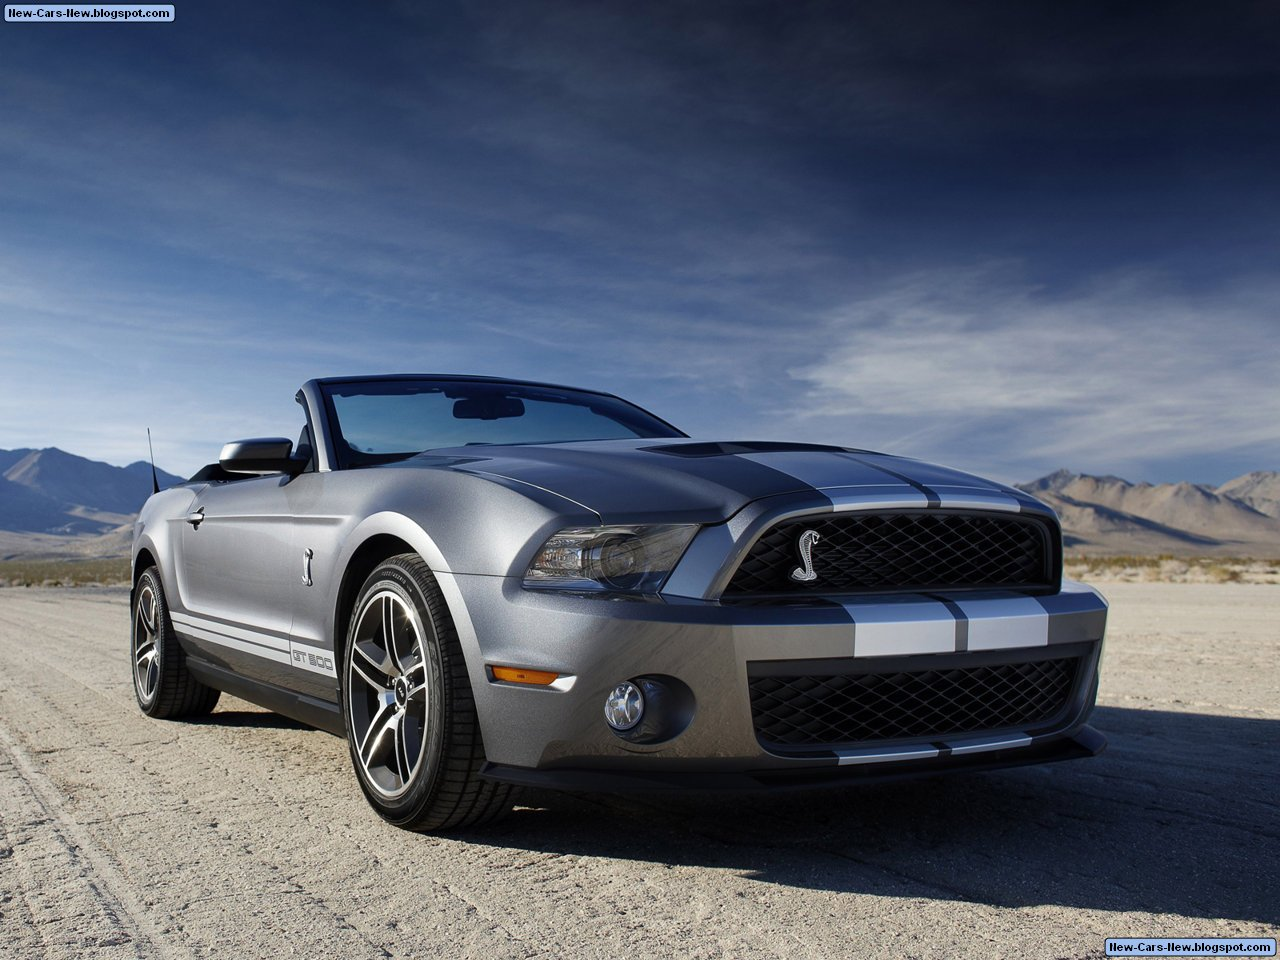 ford mustang shelby gt500 convertible 2010 best car blog ford mustang shelby gt500. Black Bedroom Furniture Sets. Home Design Ideas